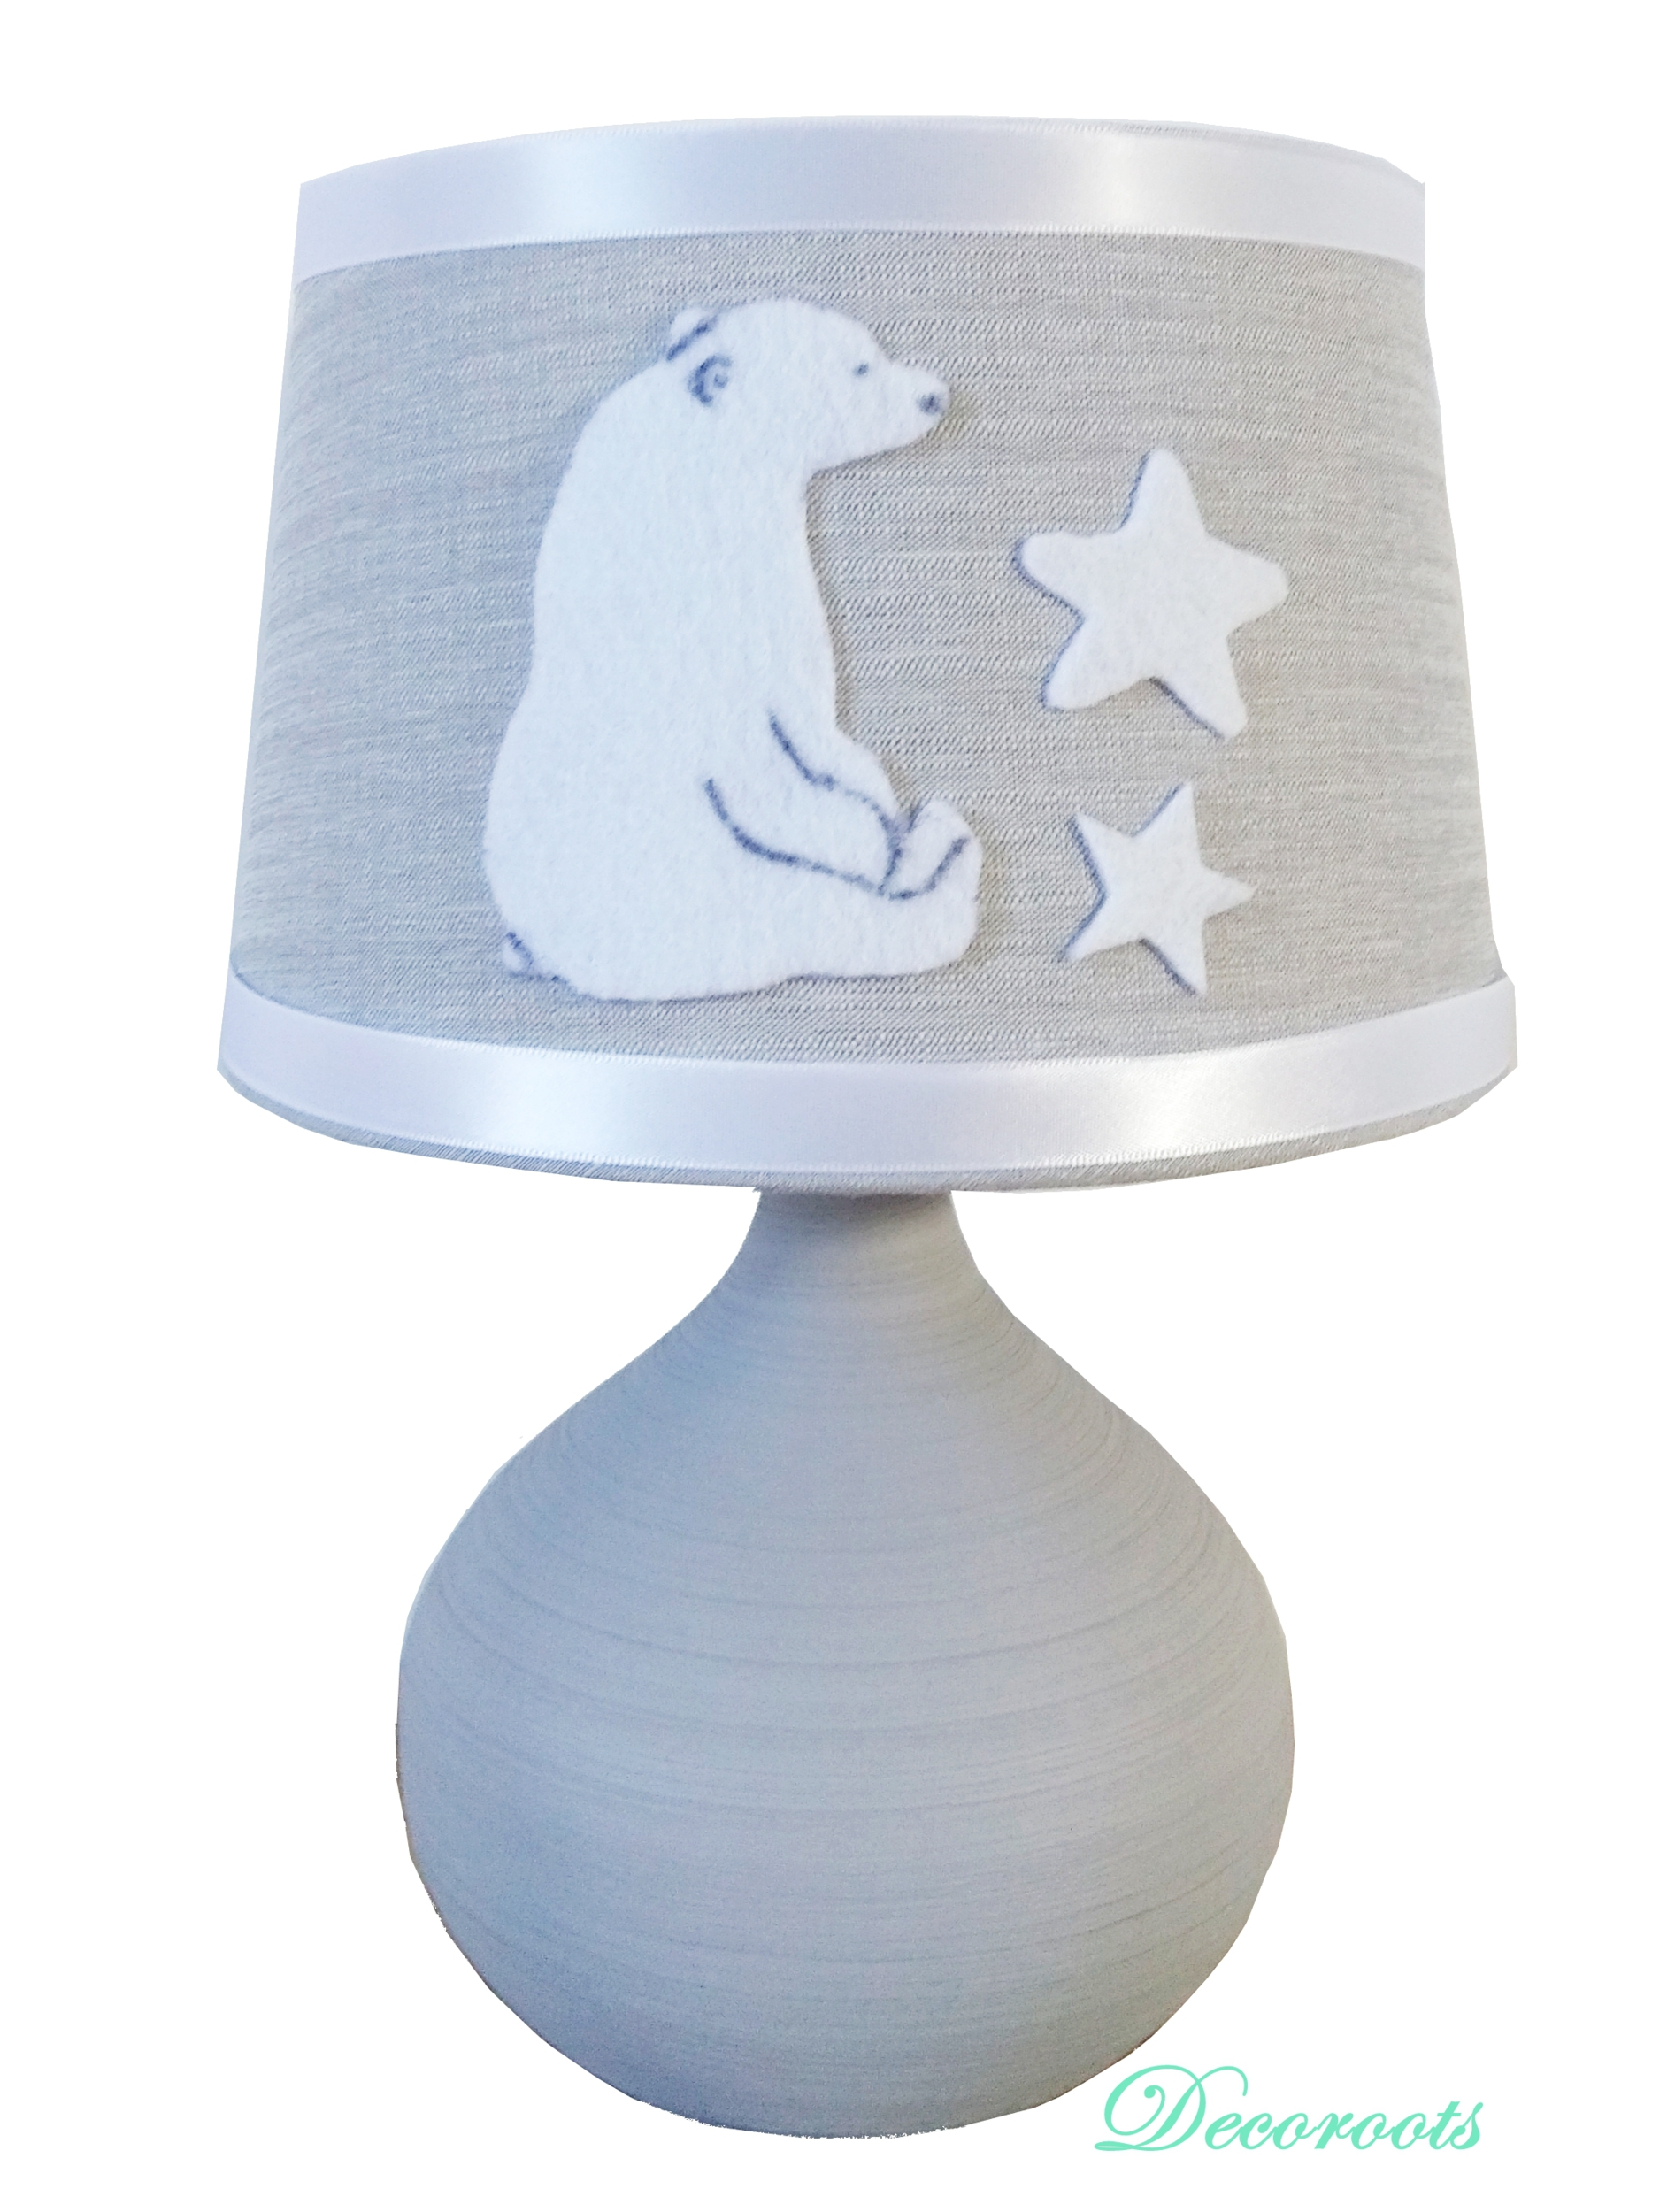 lampe de chevet ours polaire gris blanc enfant b b luminaire enfant b b decoroots. Black Bedroom Furniture Sets. Home Design Ideas